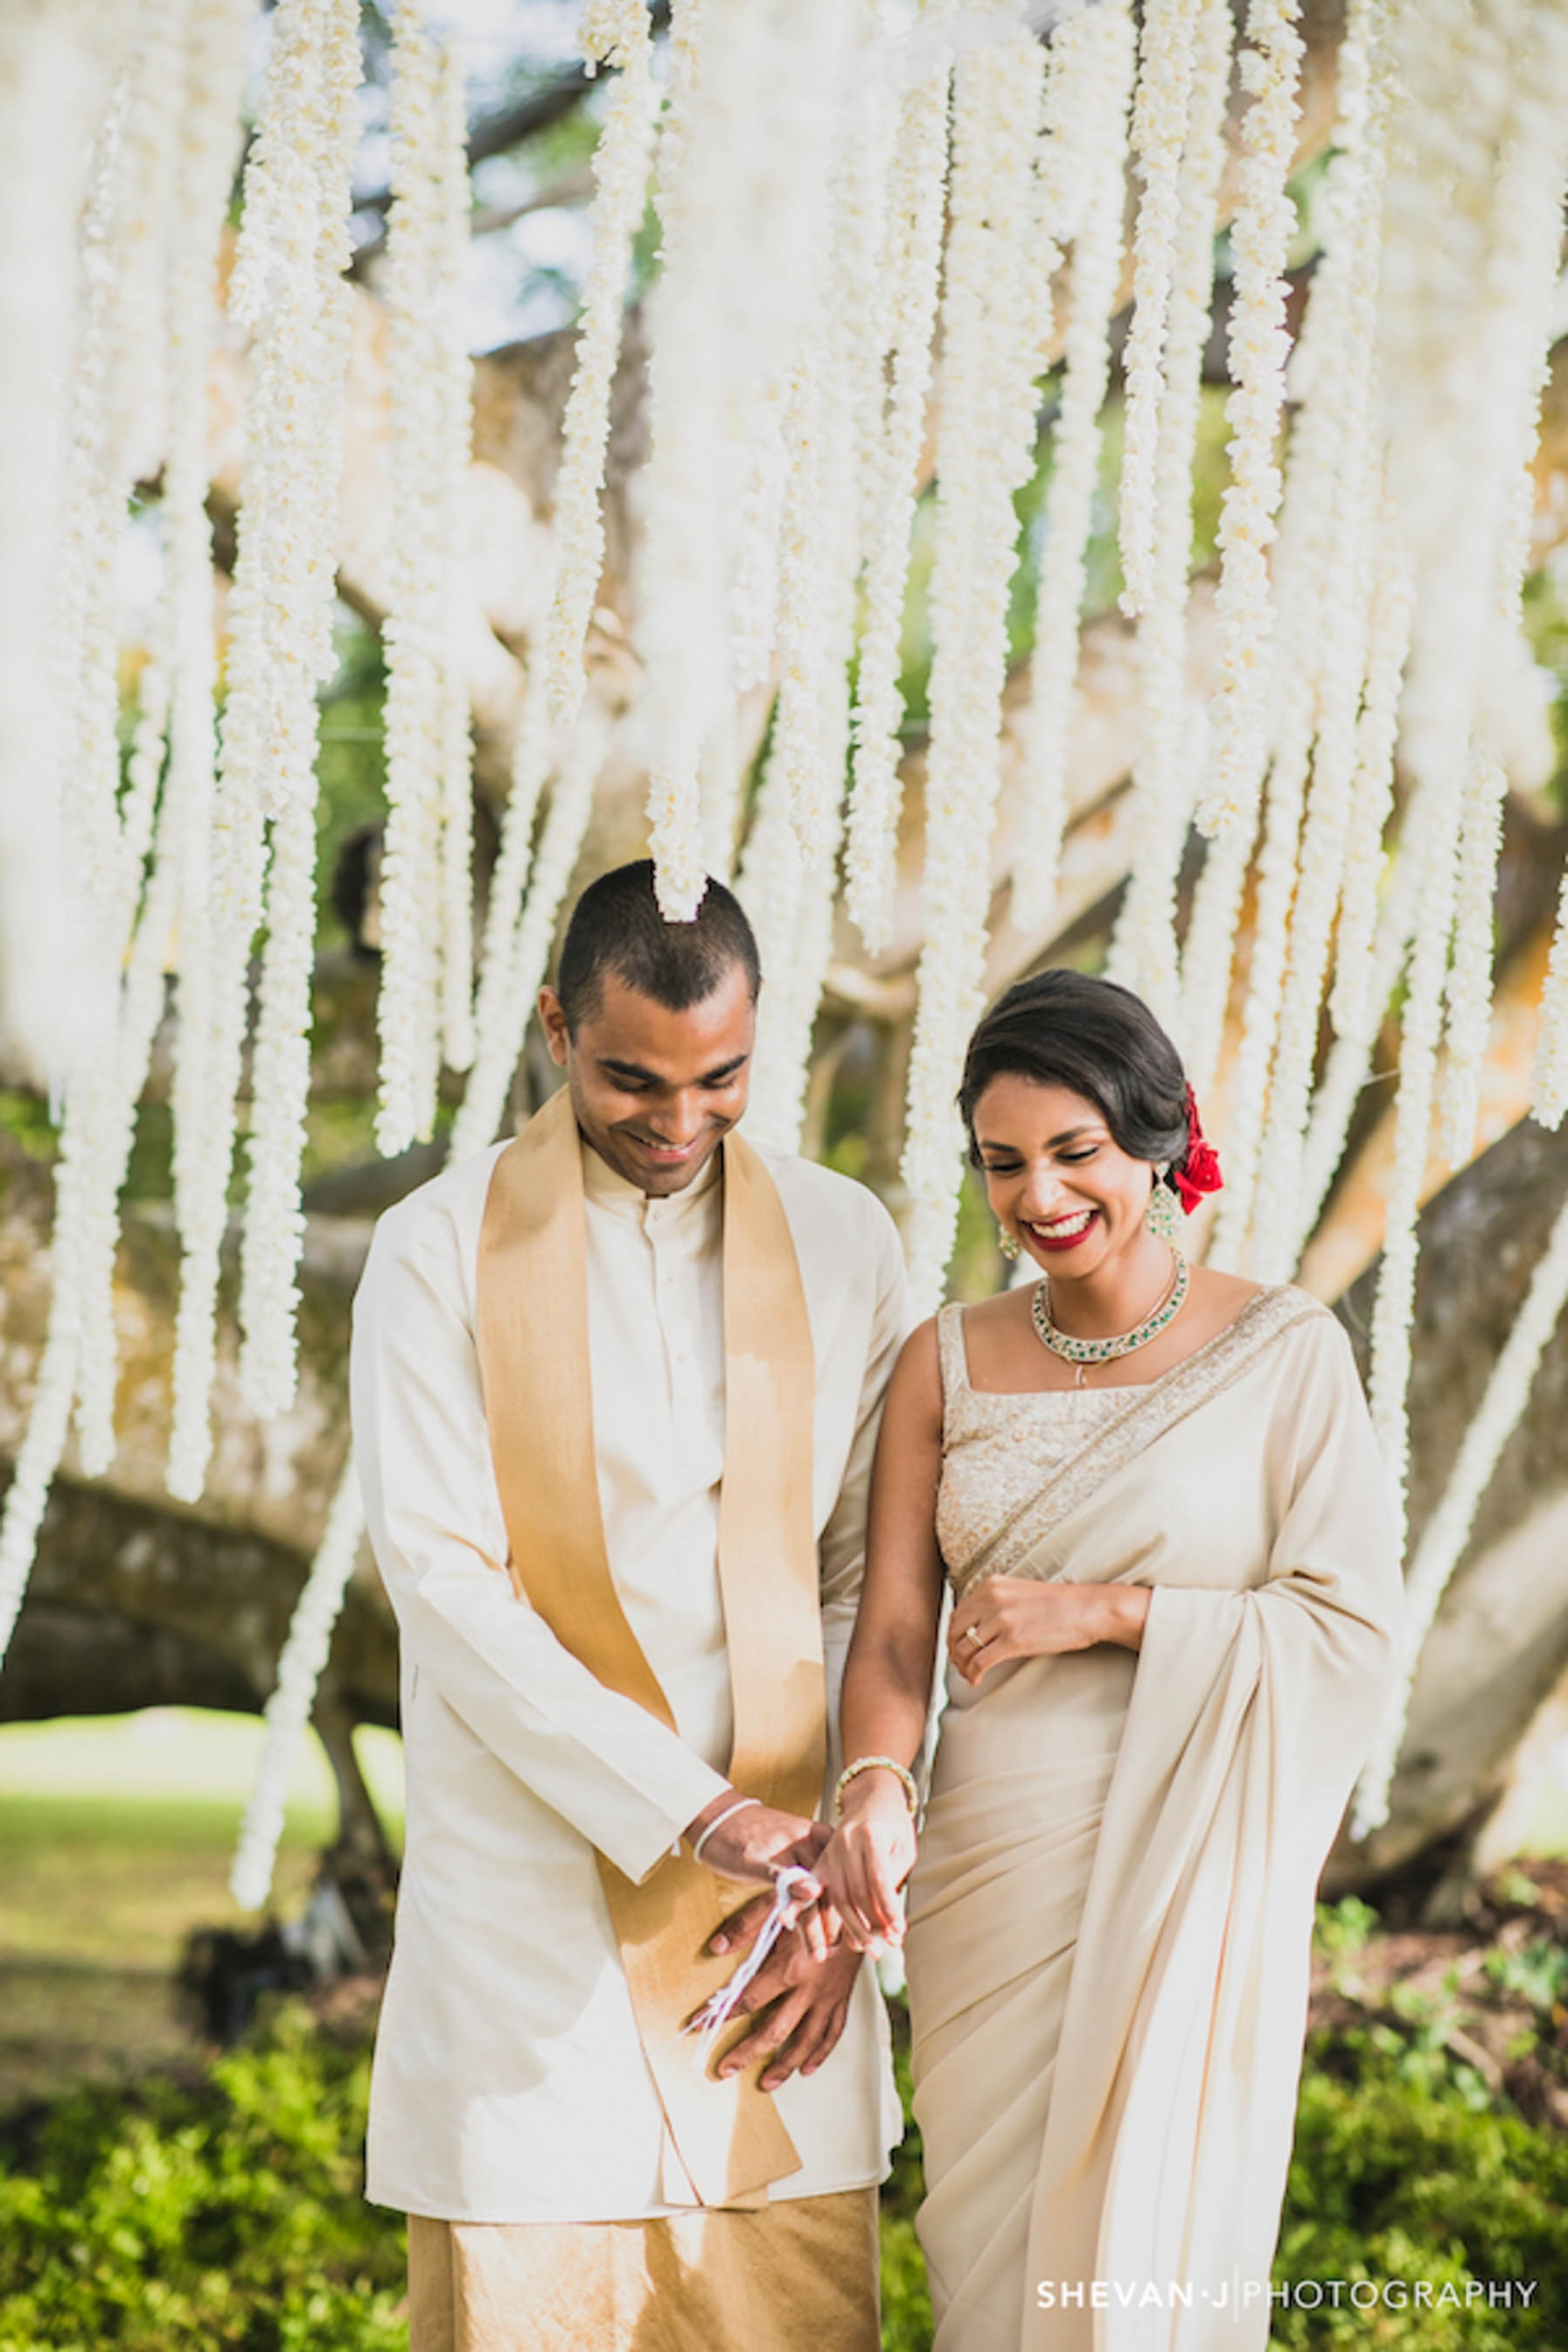 Whether it's a Sri Lankan wedding or an Indian wedding, we have the ultimate wedding planning checklist printable for you. Let's start wedding planning!